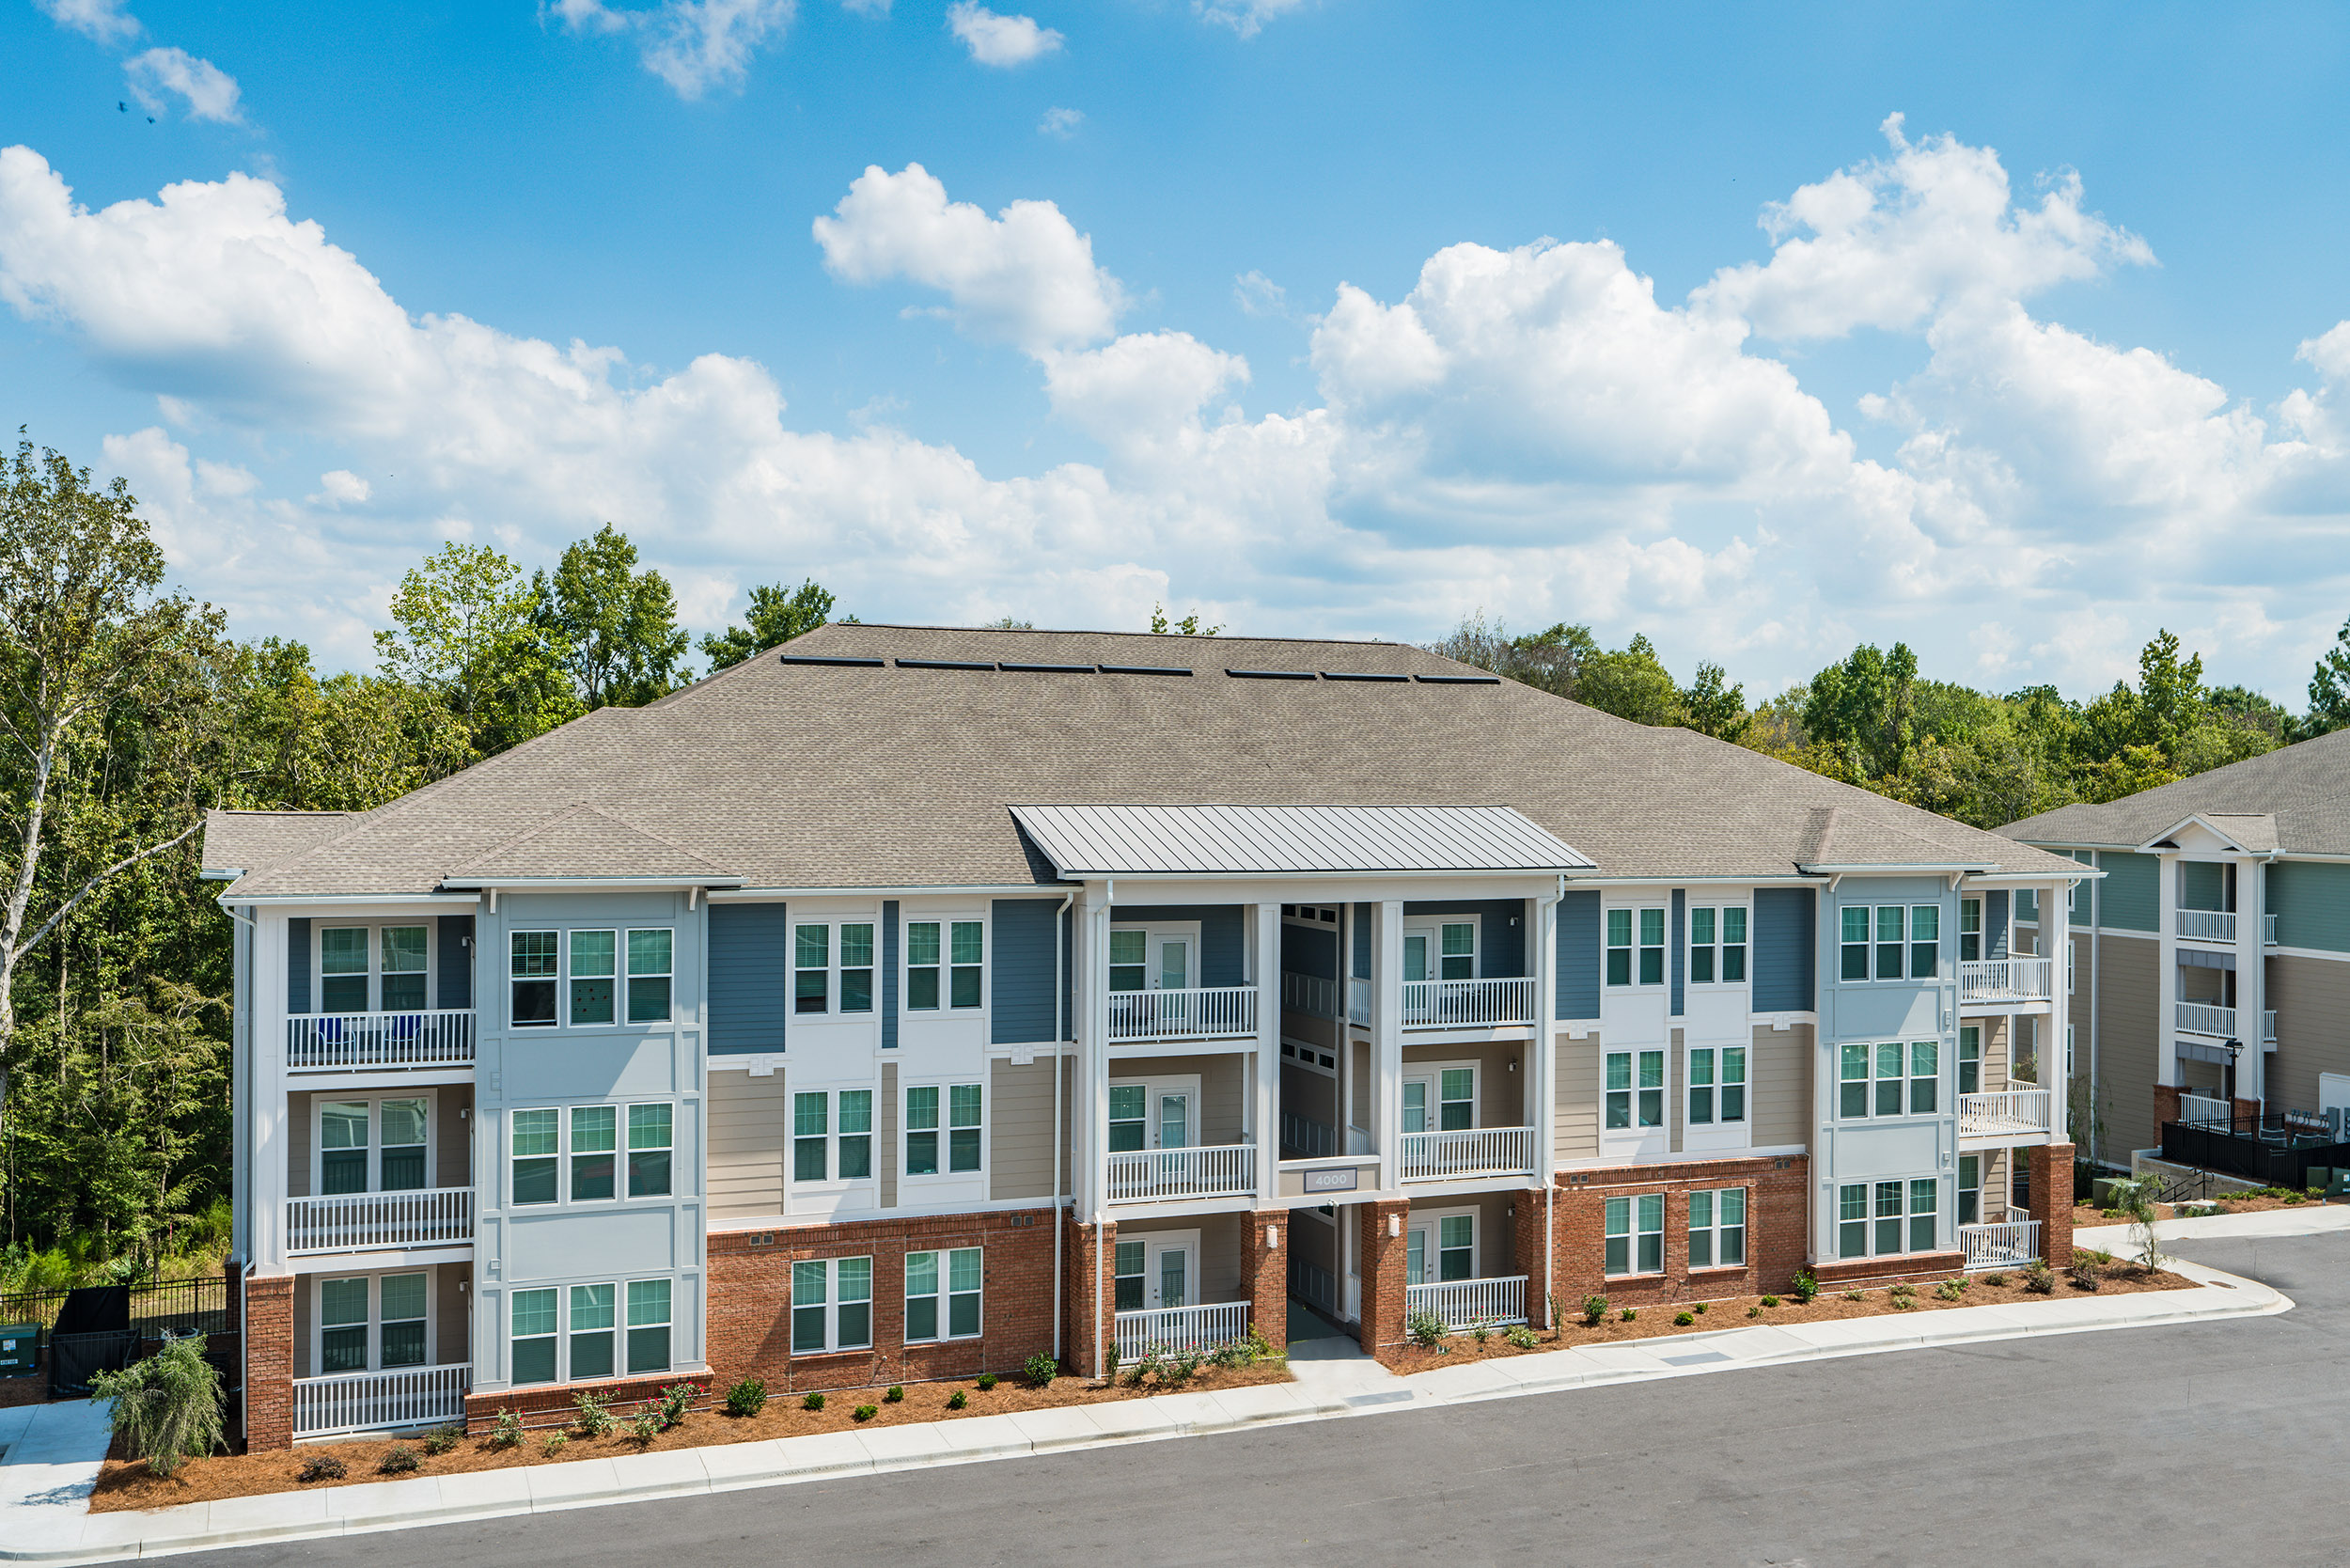 Teal and brown multi story apartment complex